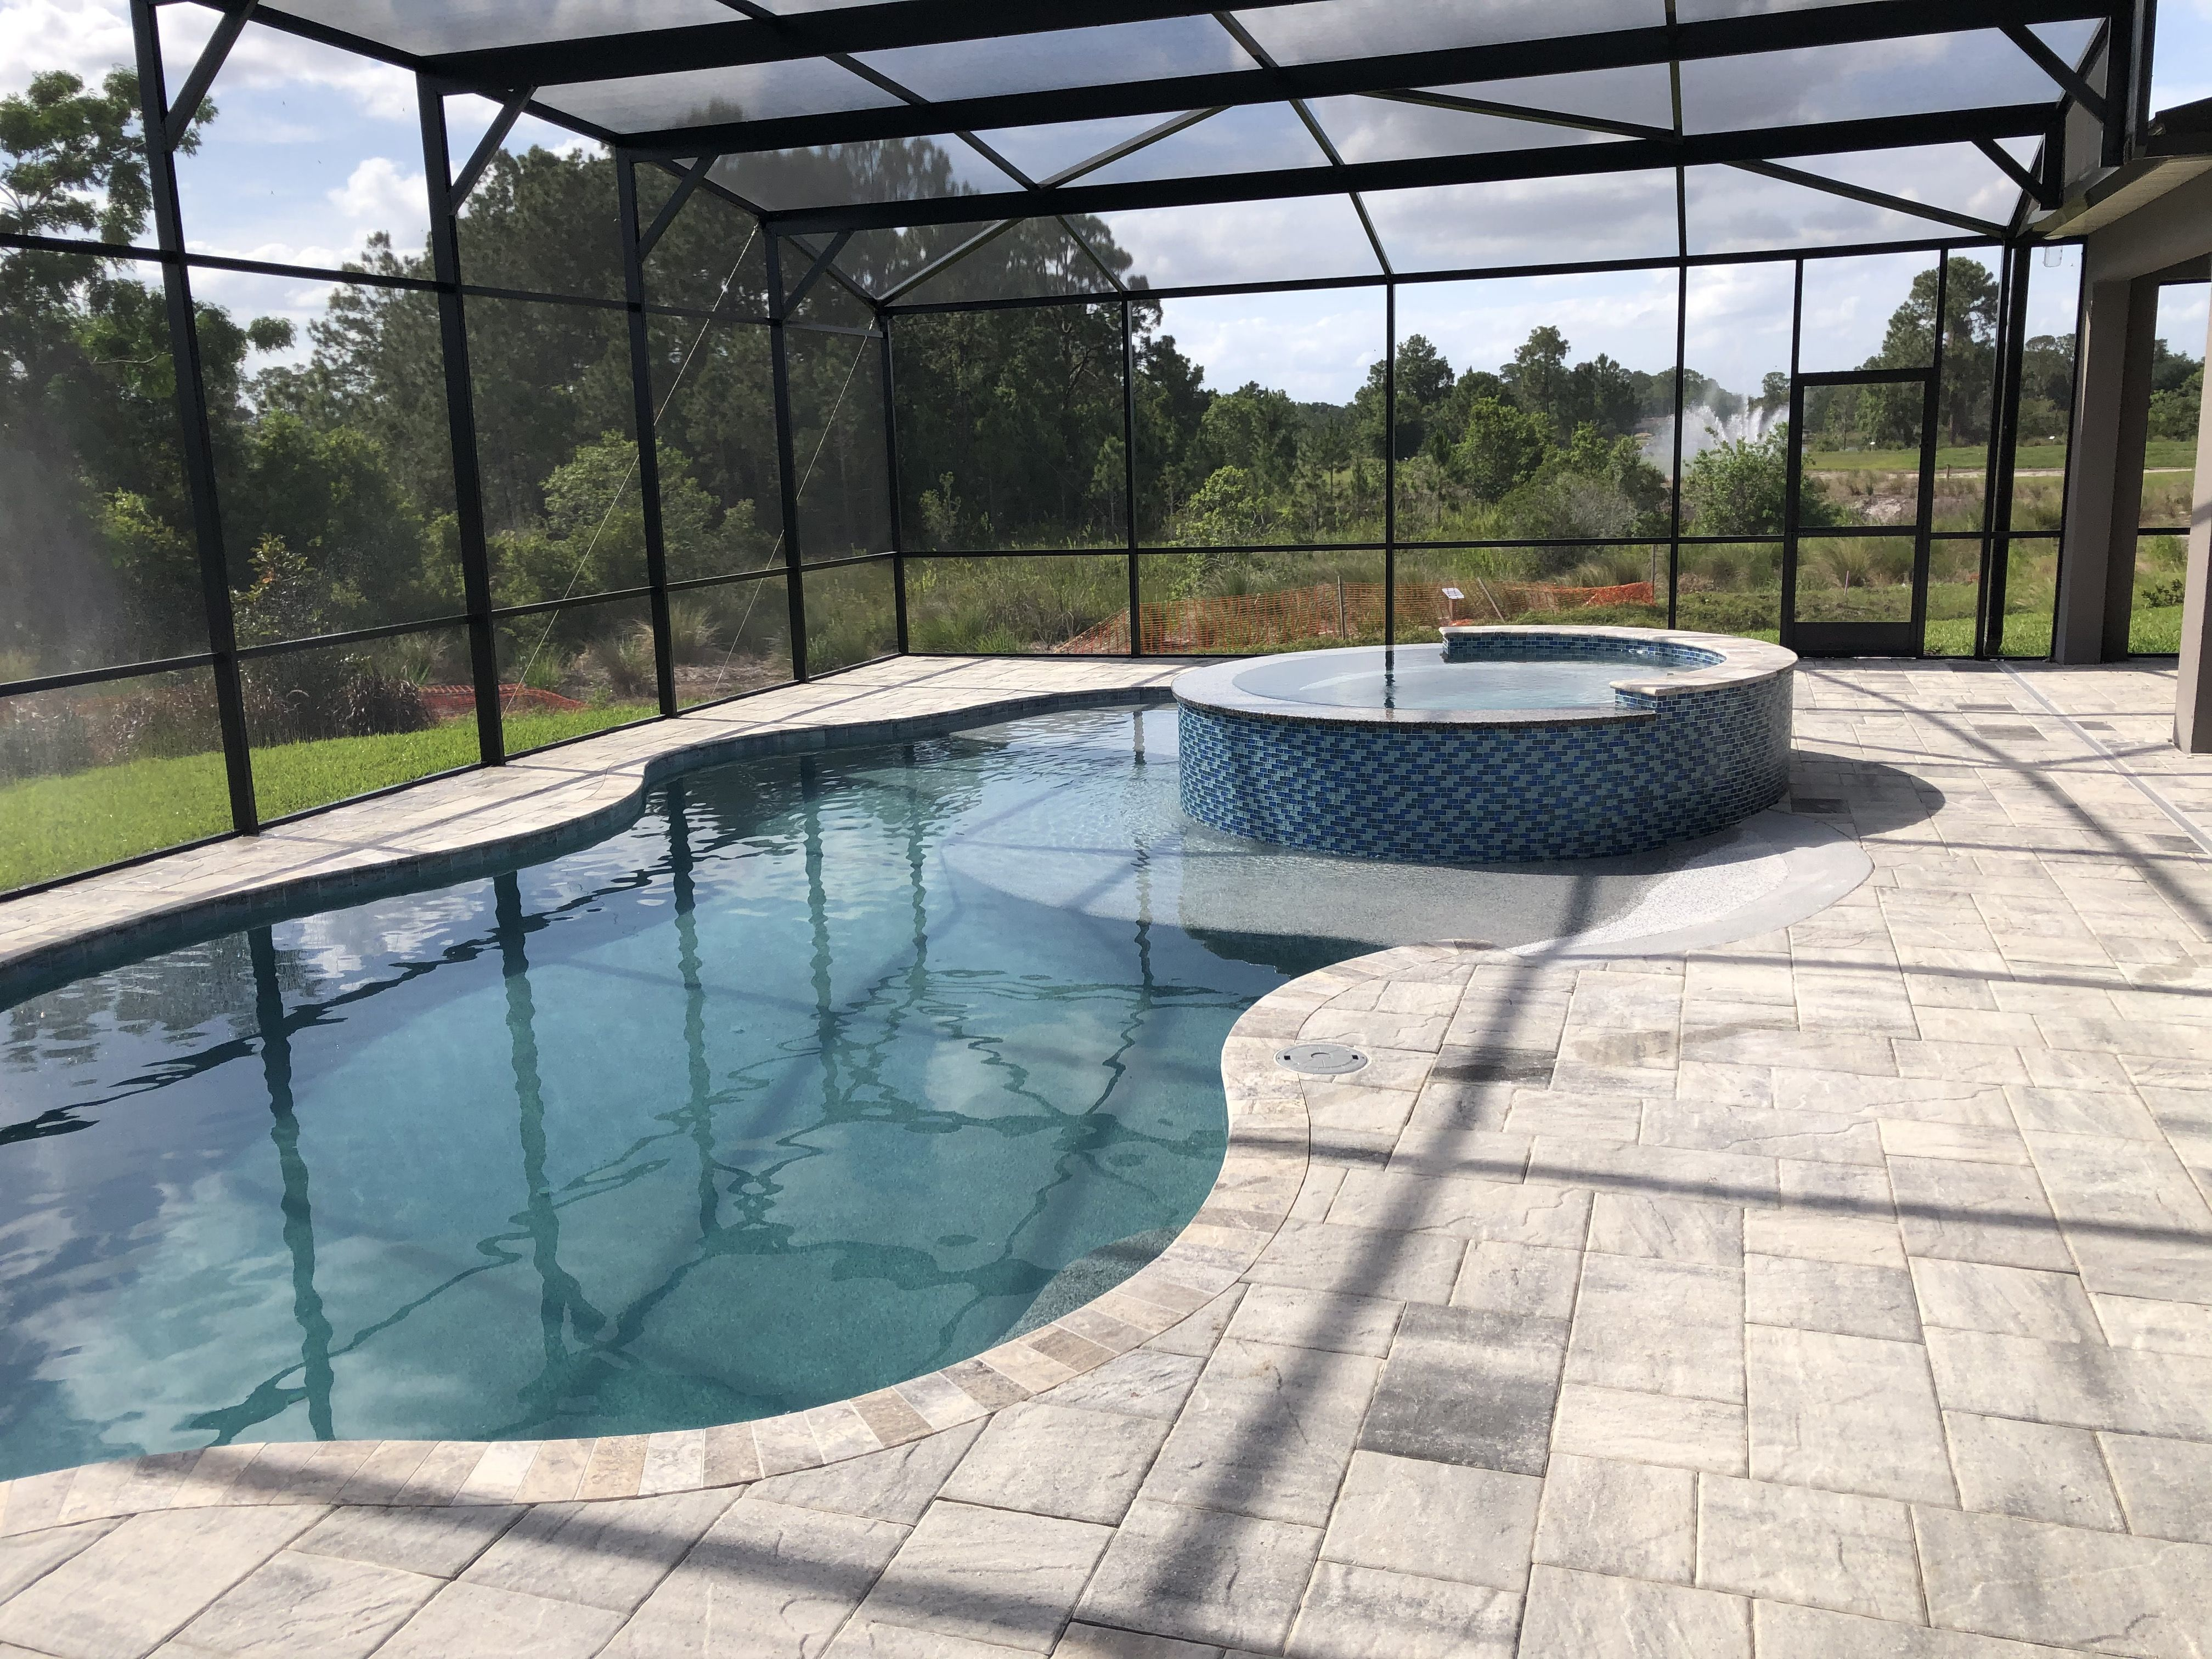 Pool And Spa With Screen Enclosure In Winter Garden Florida Swimming Pool Builder Spa Pool Swimming Pools Inground